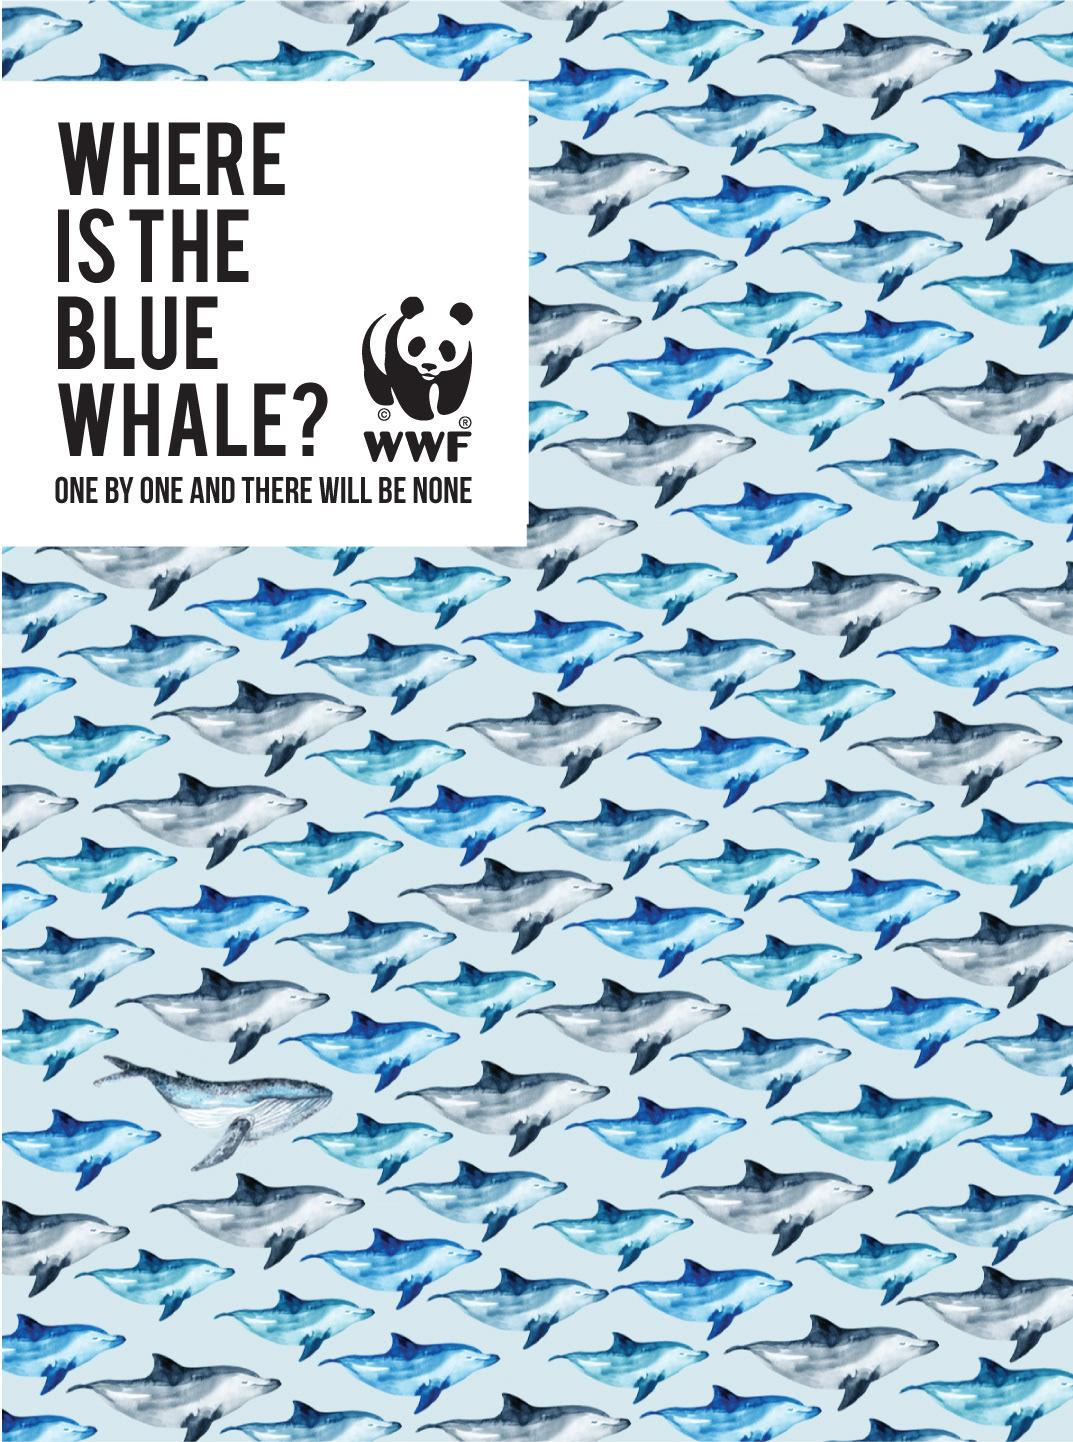 WWF Print Ad - One by One There Will be None, 3